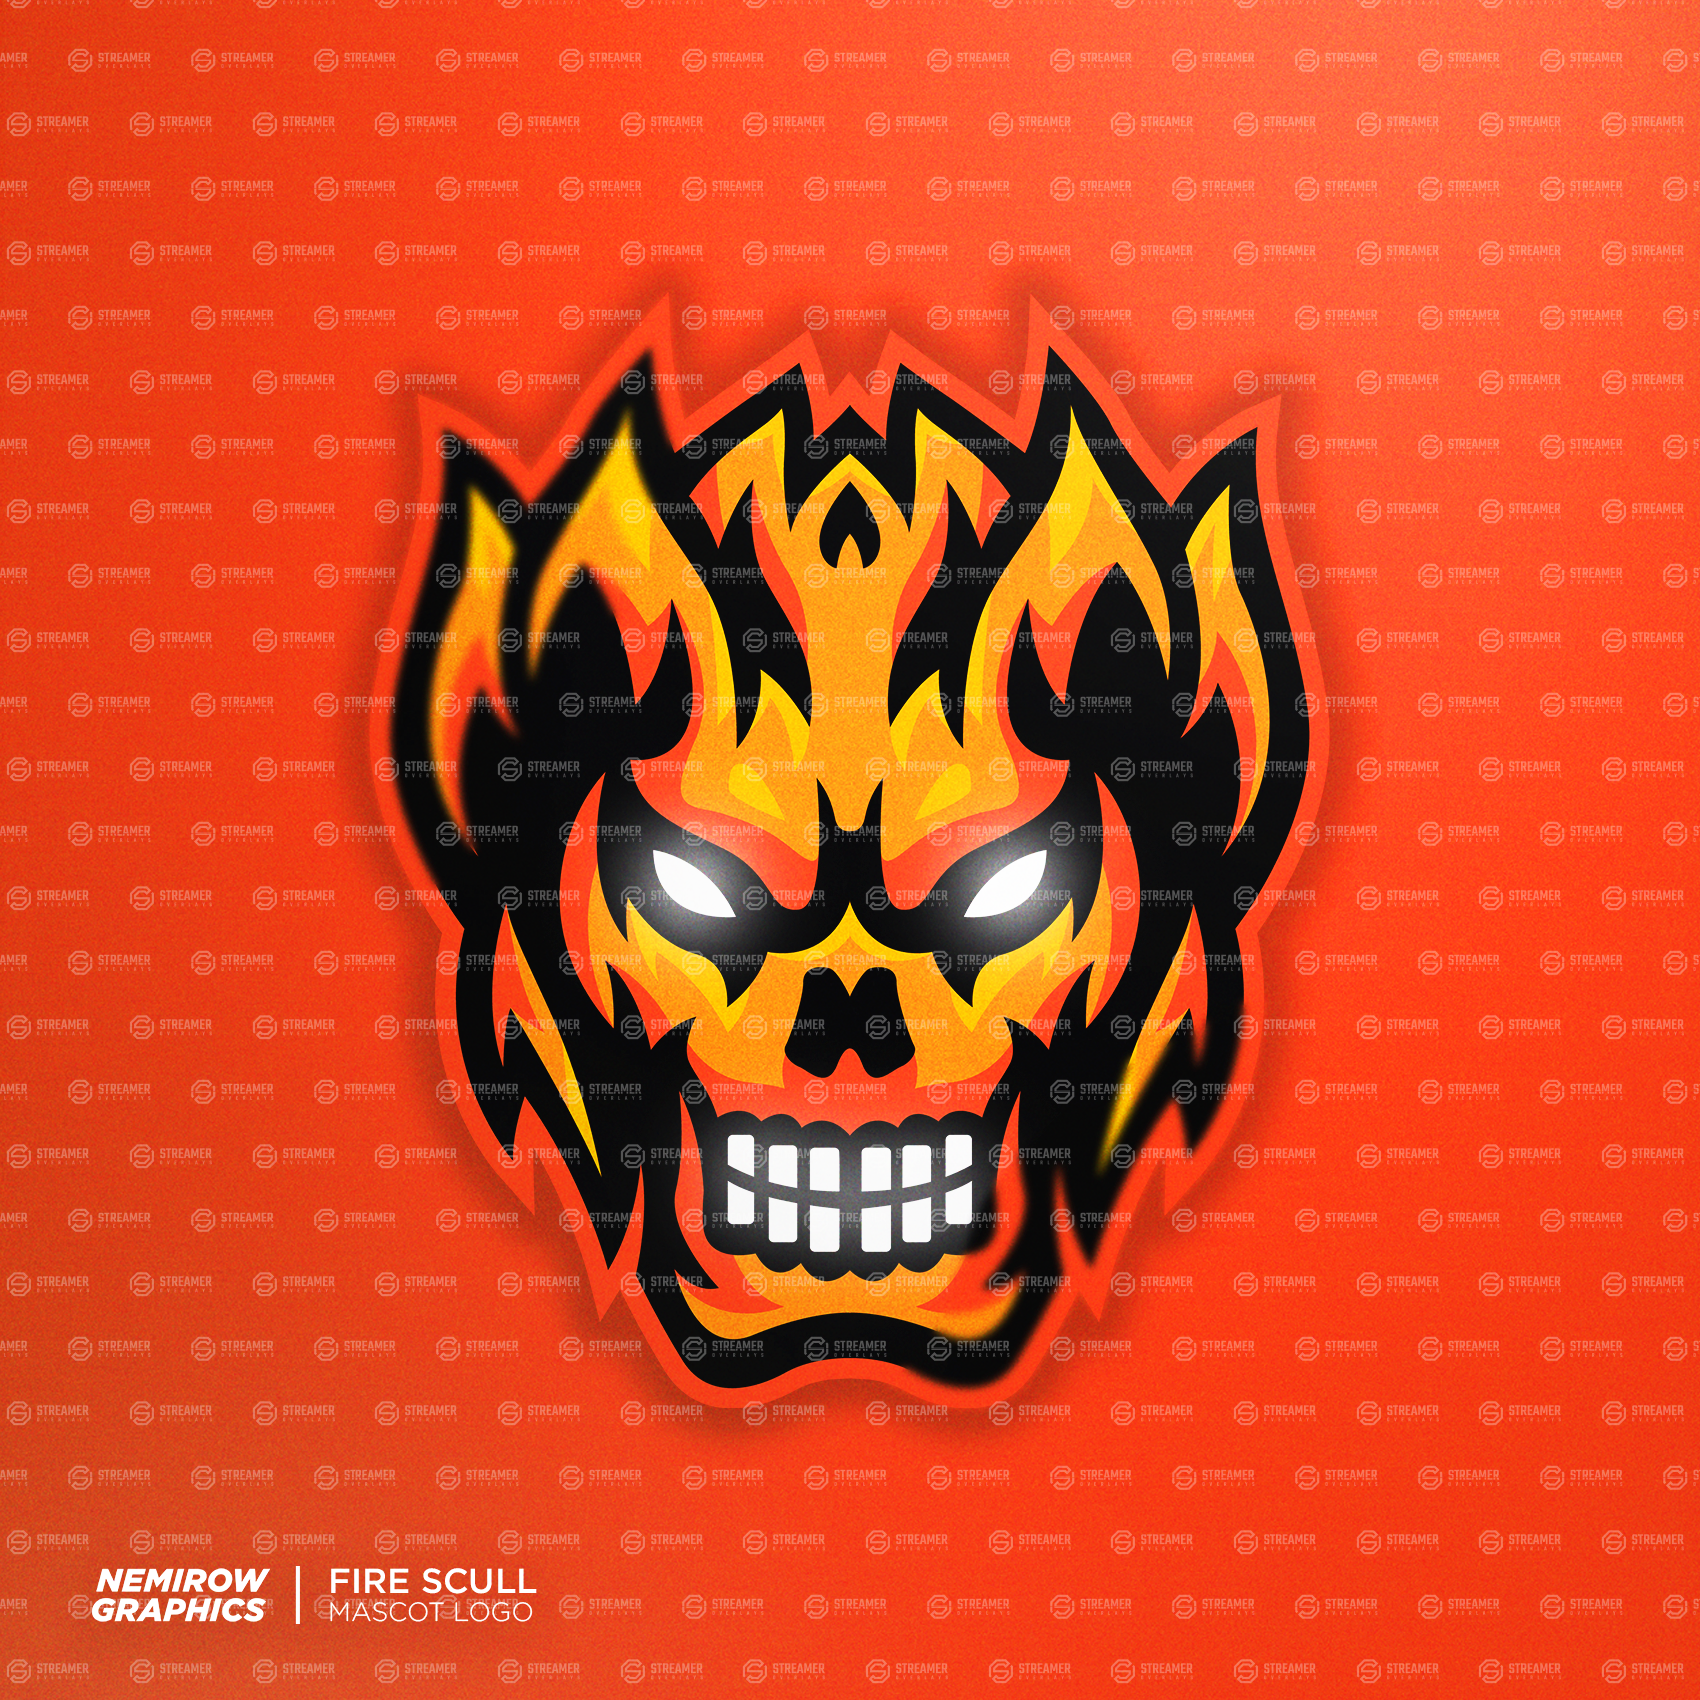 fire demon mascot logo for sale Streamer overlays premade mascot esports logos for sale